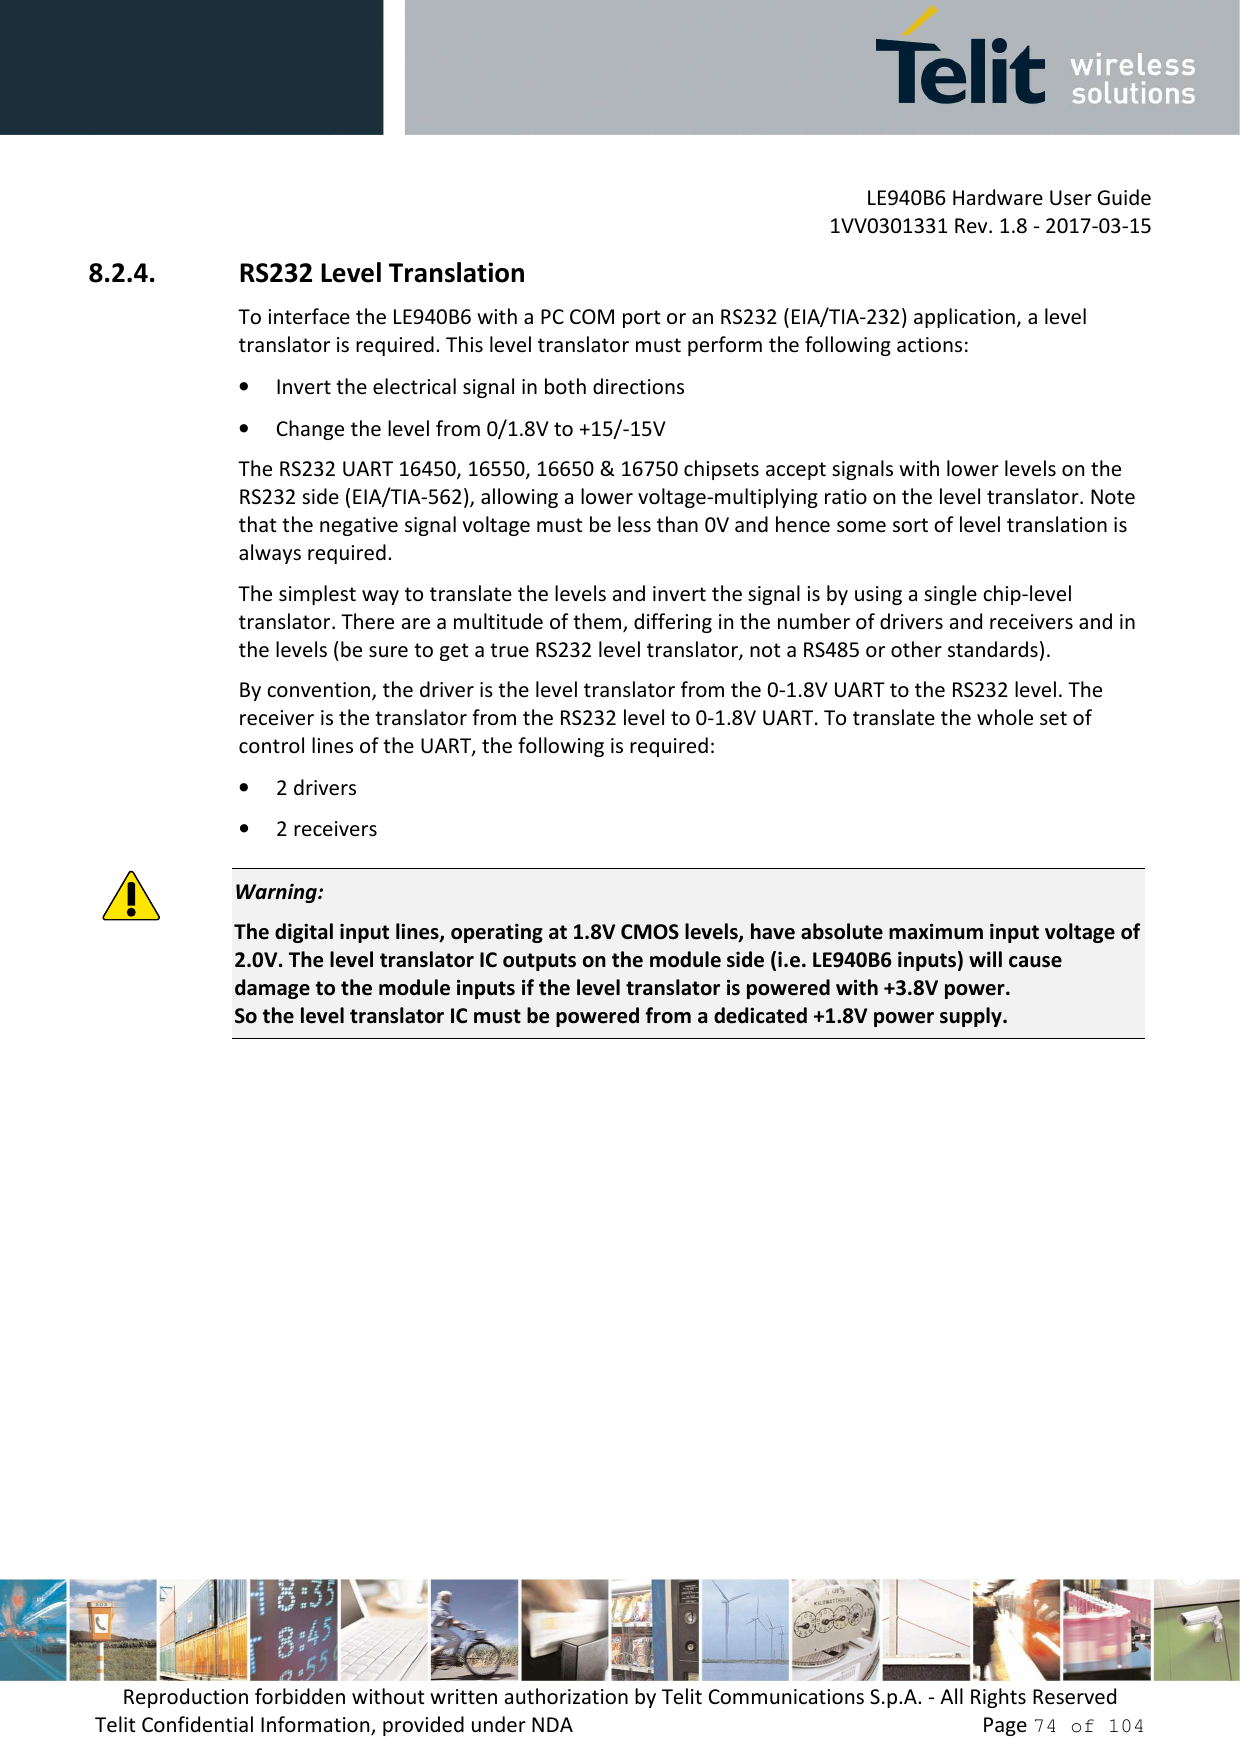 LE940B6 Hardware User Guide     1VV0301331 Rev. 1.8 - 2017-03-15 Reproduction forbidden without written authorization by Telit Communications S.p.A. - All Rights Reserved Telit Confidential Information, provided under NDA                 Page 74 of 104 8.2.4. RS232 Level Translation To interface the LE940B6 with a PC COM port or an RS232 (EIA/TIA-232) application, a level translator is required. This level translator must perform the following actions: • Invert the electrical signal in both directions • Change the level from 0/1.8V to +15/-15V The RS232 UART 16450, 16550, 16650 & 16750 chipsets accept signals with lower levels on the RS232 side (EIA/TIA-562), allowing a lower voltage-multiplying ratio on the level translator. Note that the negative signal voltage must be less than 0V and hence some sort of level translation is always required.  The simplest way to translate the levels and invert the signal is by using a single chip-level translator. There are a multitude of them, differing in the number of drivers and receivers and in the levels (be sure to get a true RS232 level translator, not a RS485 or other standards). By convention, the driver is the level translator from the 0-1.8V UART to the RS232 level. The receiver is the translator from the RS232 level to 0-1.8V UART. To translate the whole set of control lines of the UART, the following is required: • 2 drivers • 2 receivers  Warning: The digital input lines, operating at 1.8V CMOS levels, have absolute maximum input voltage of 2.0V. The level translator IC outputs on the module side (i.e. LE940B6 inputs) will cause damage to the module inputs if the level translator is powered with +3.8V power.  So the level translator IC must be powered from a dedicated +1.8V power supply.